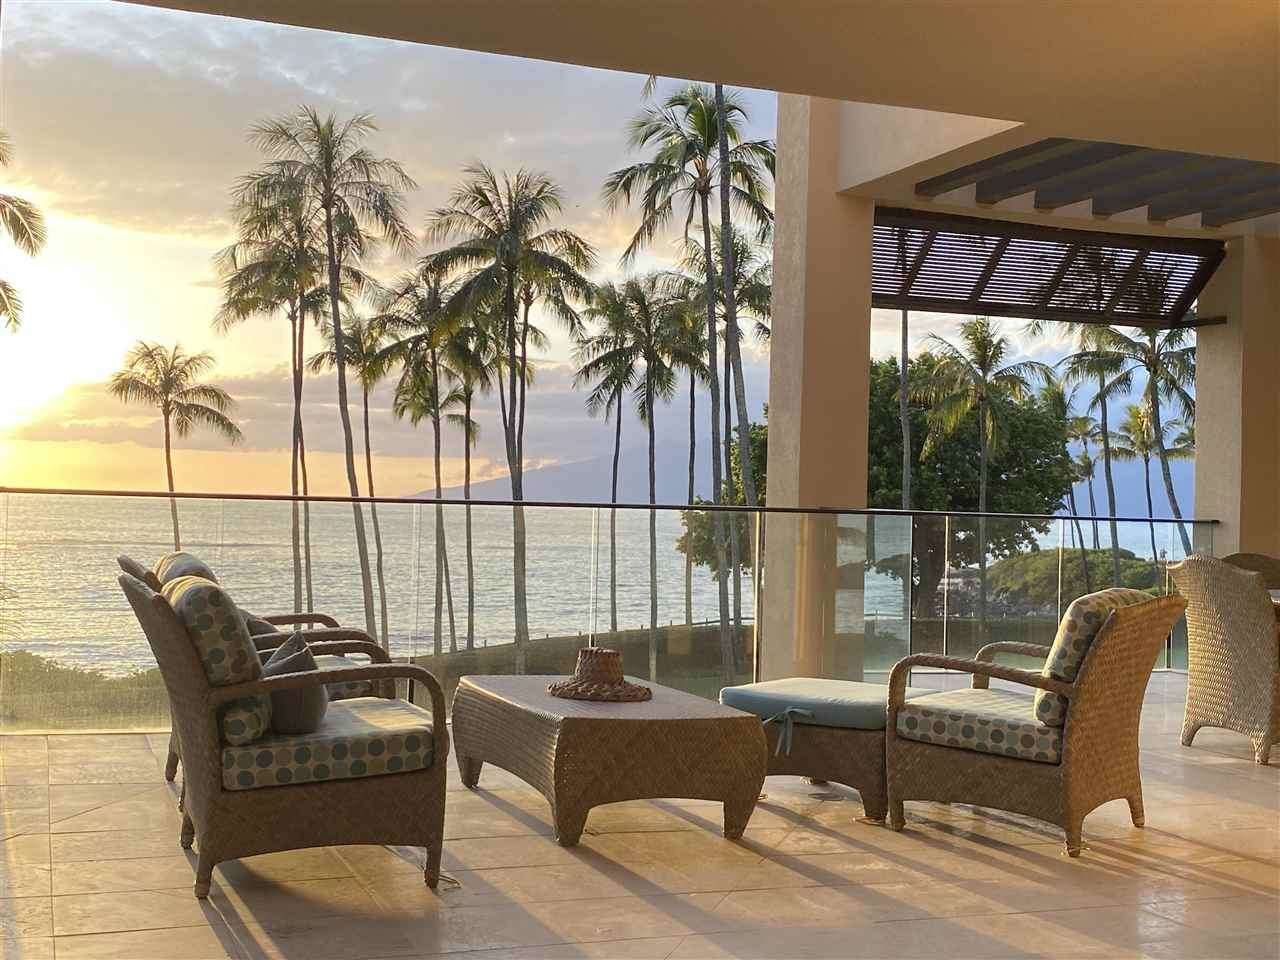 Maui Home for sale 390851